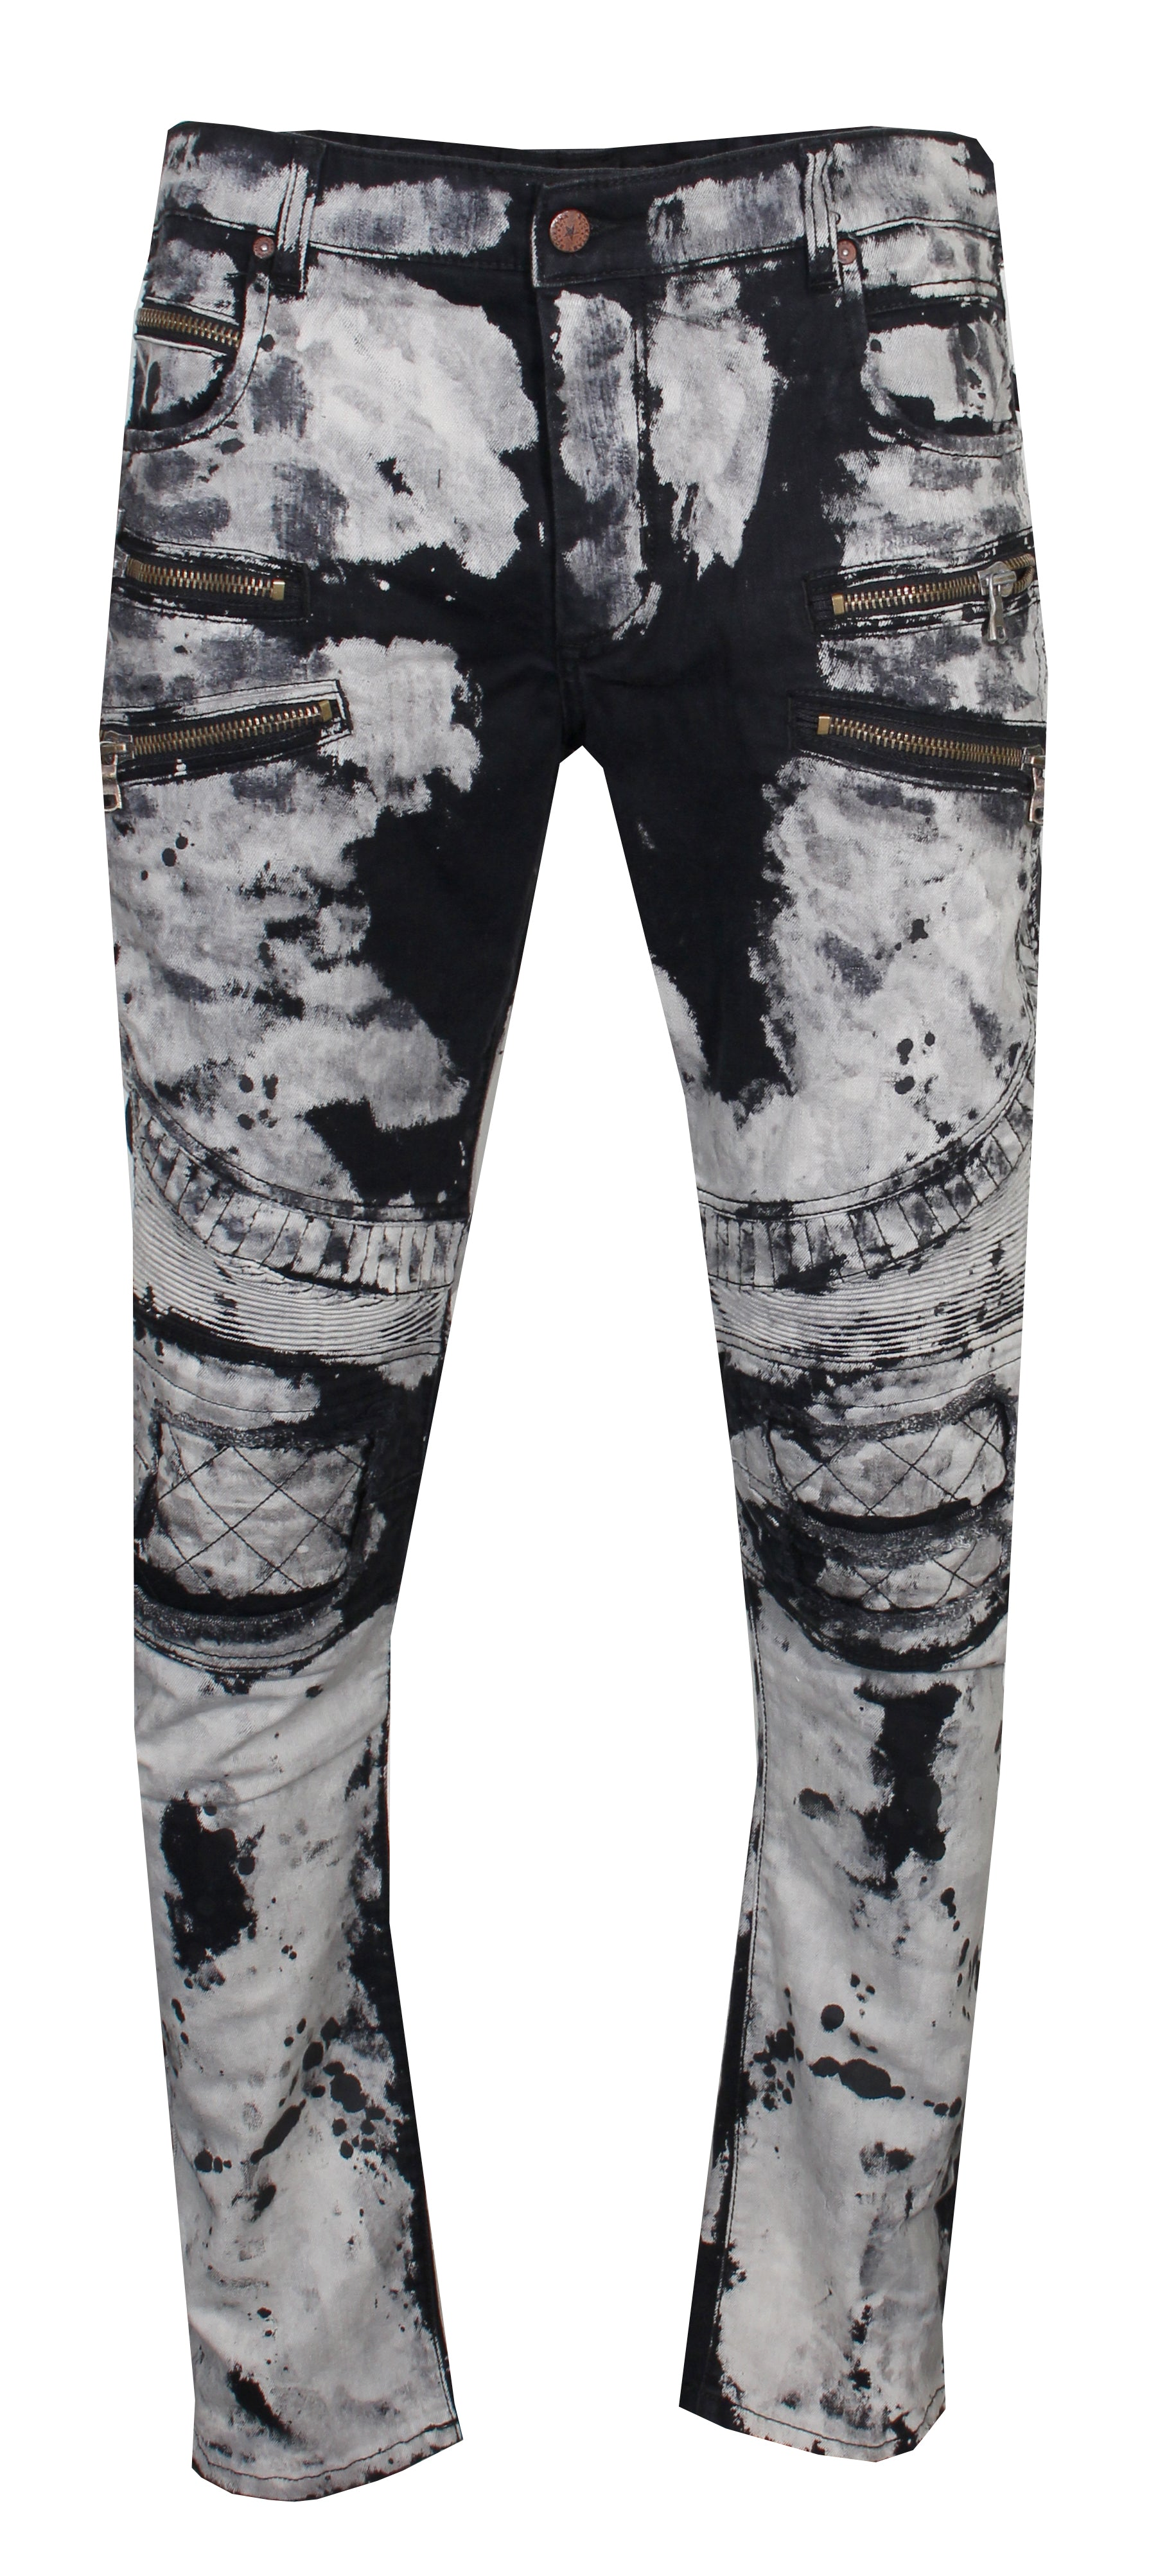 Knox Biker Denim